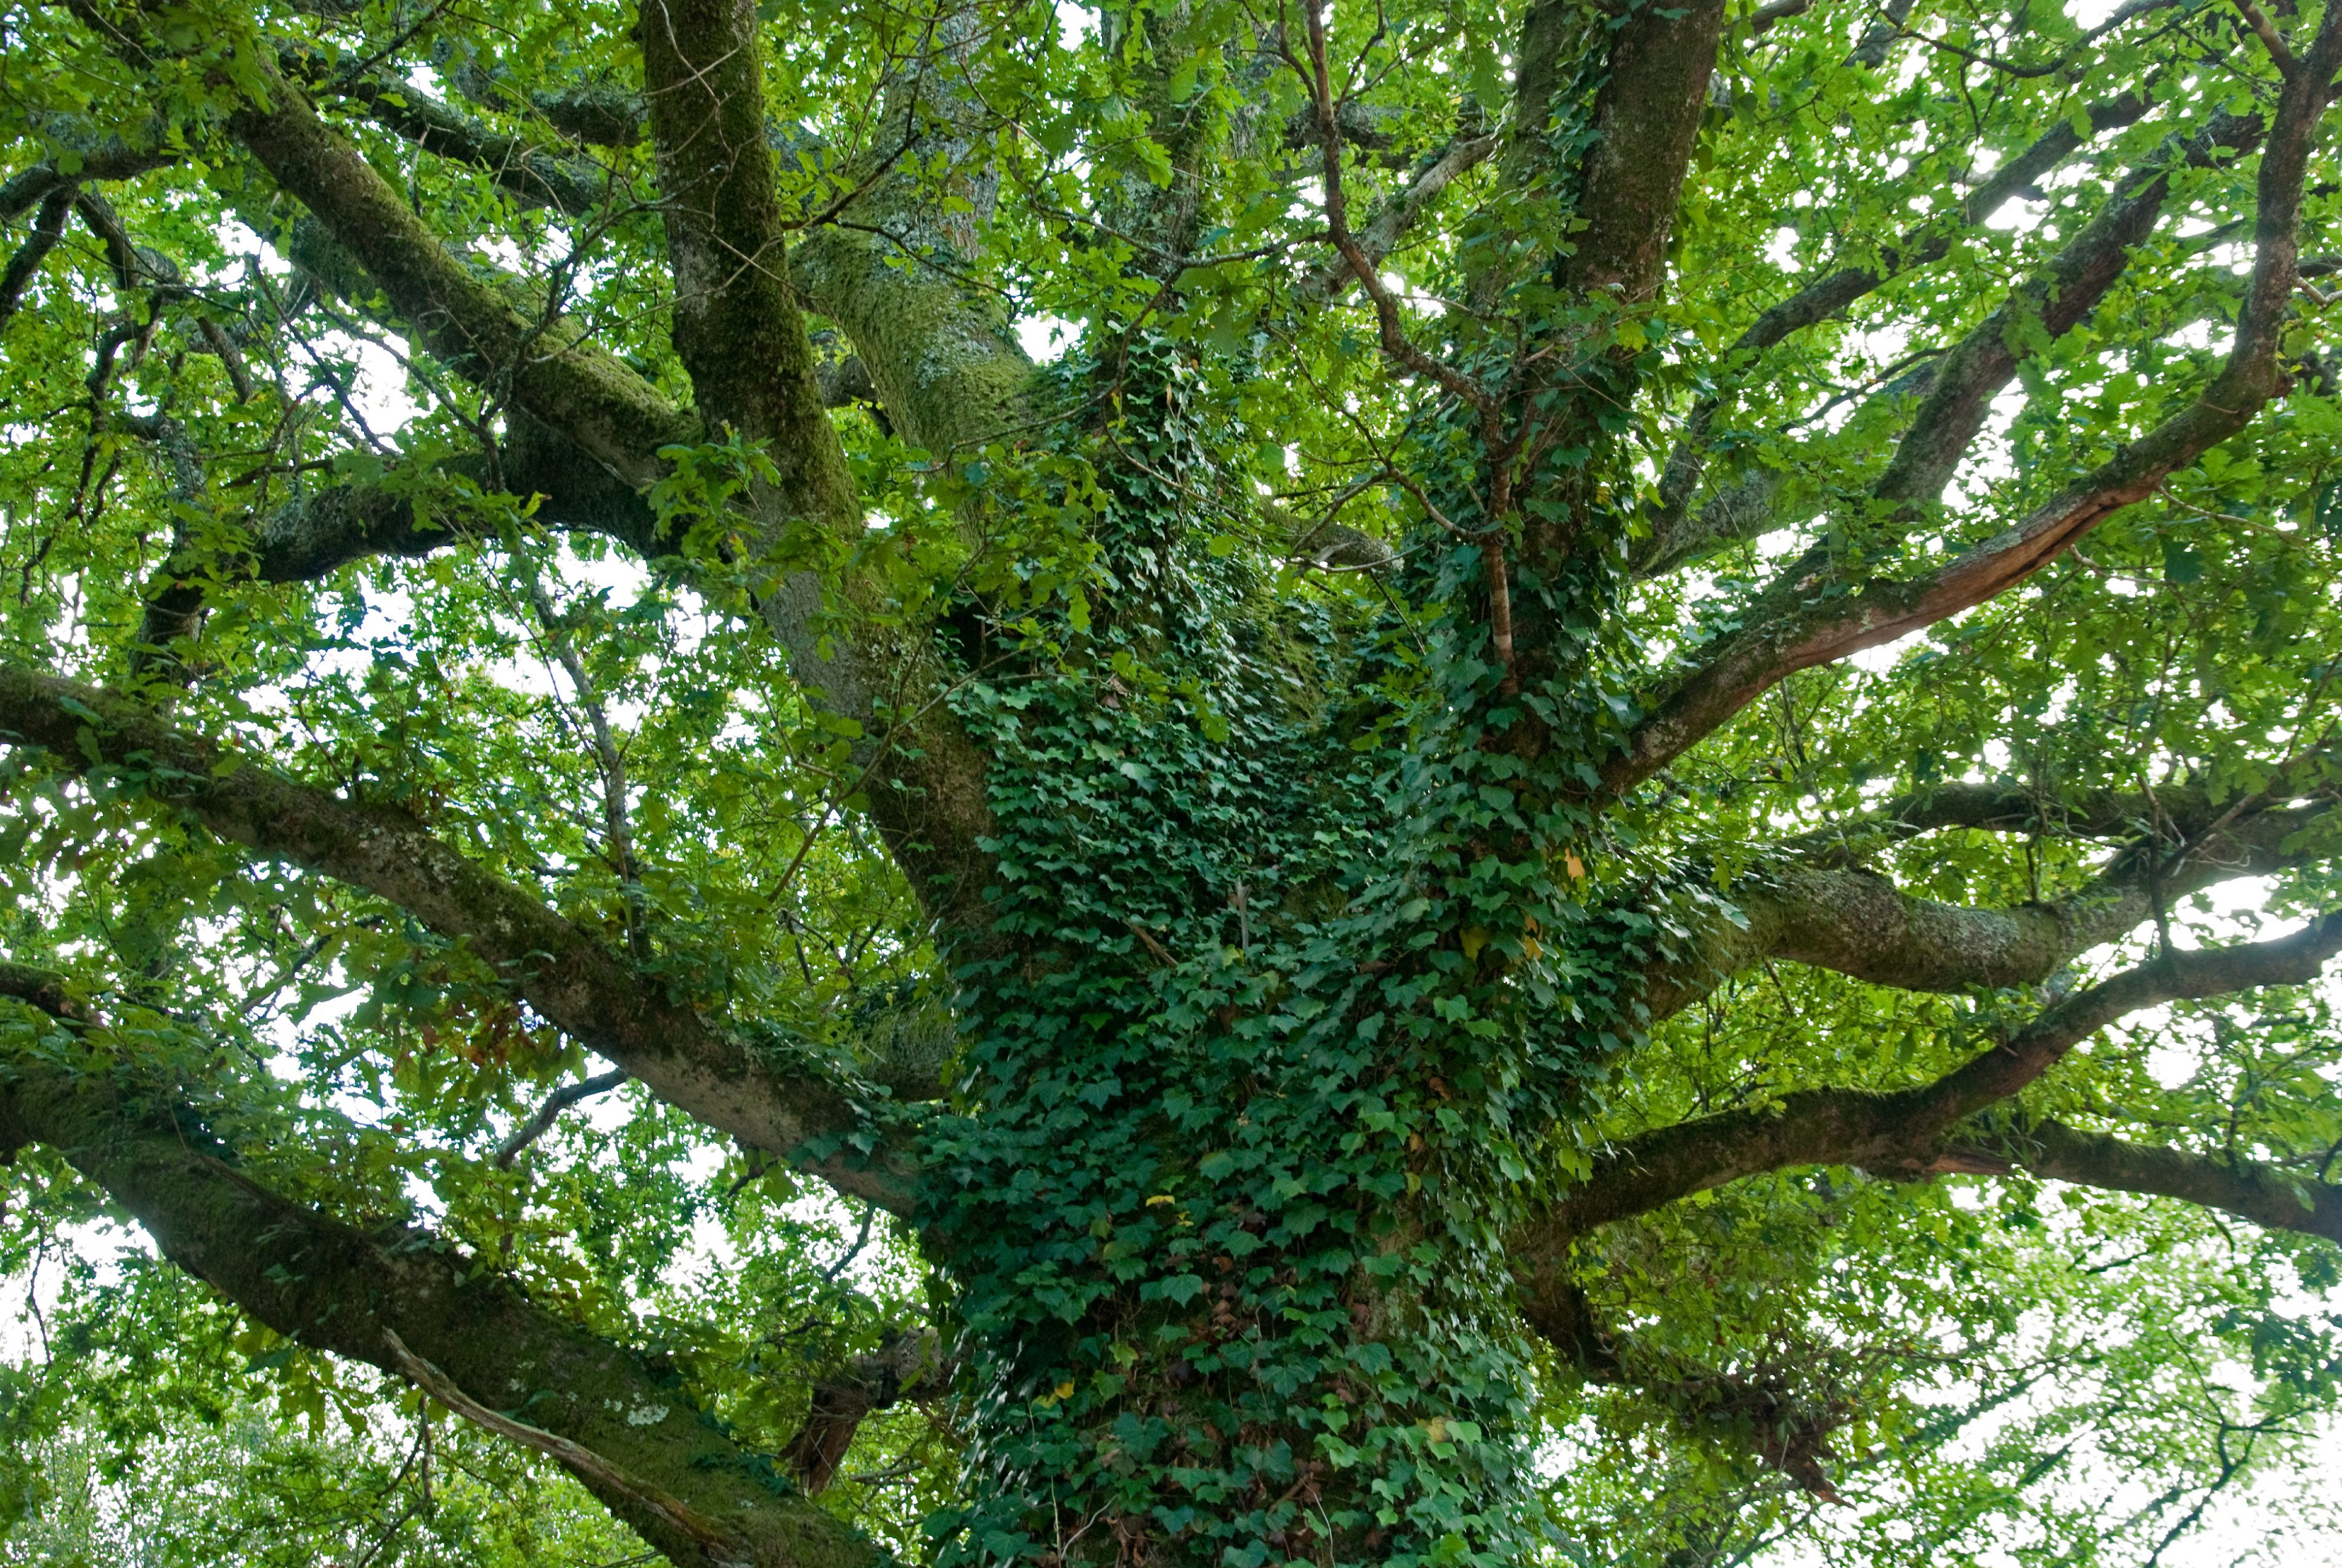 Ivy Ivy can add considerable weight and wind resistance in the canopy e1560970089209 - Ivy on Trees is a Concern